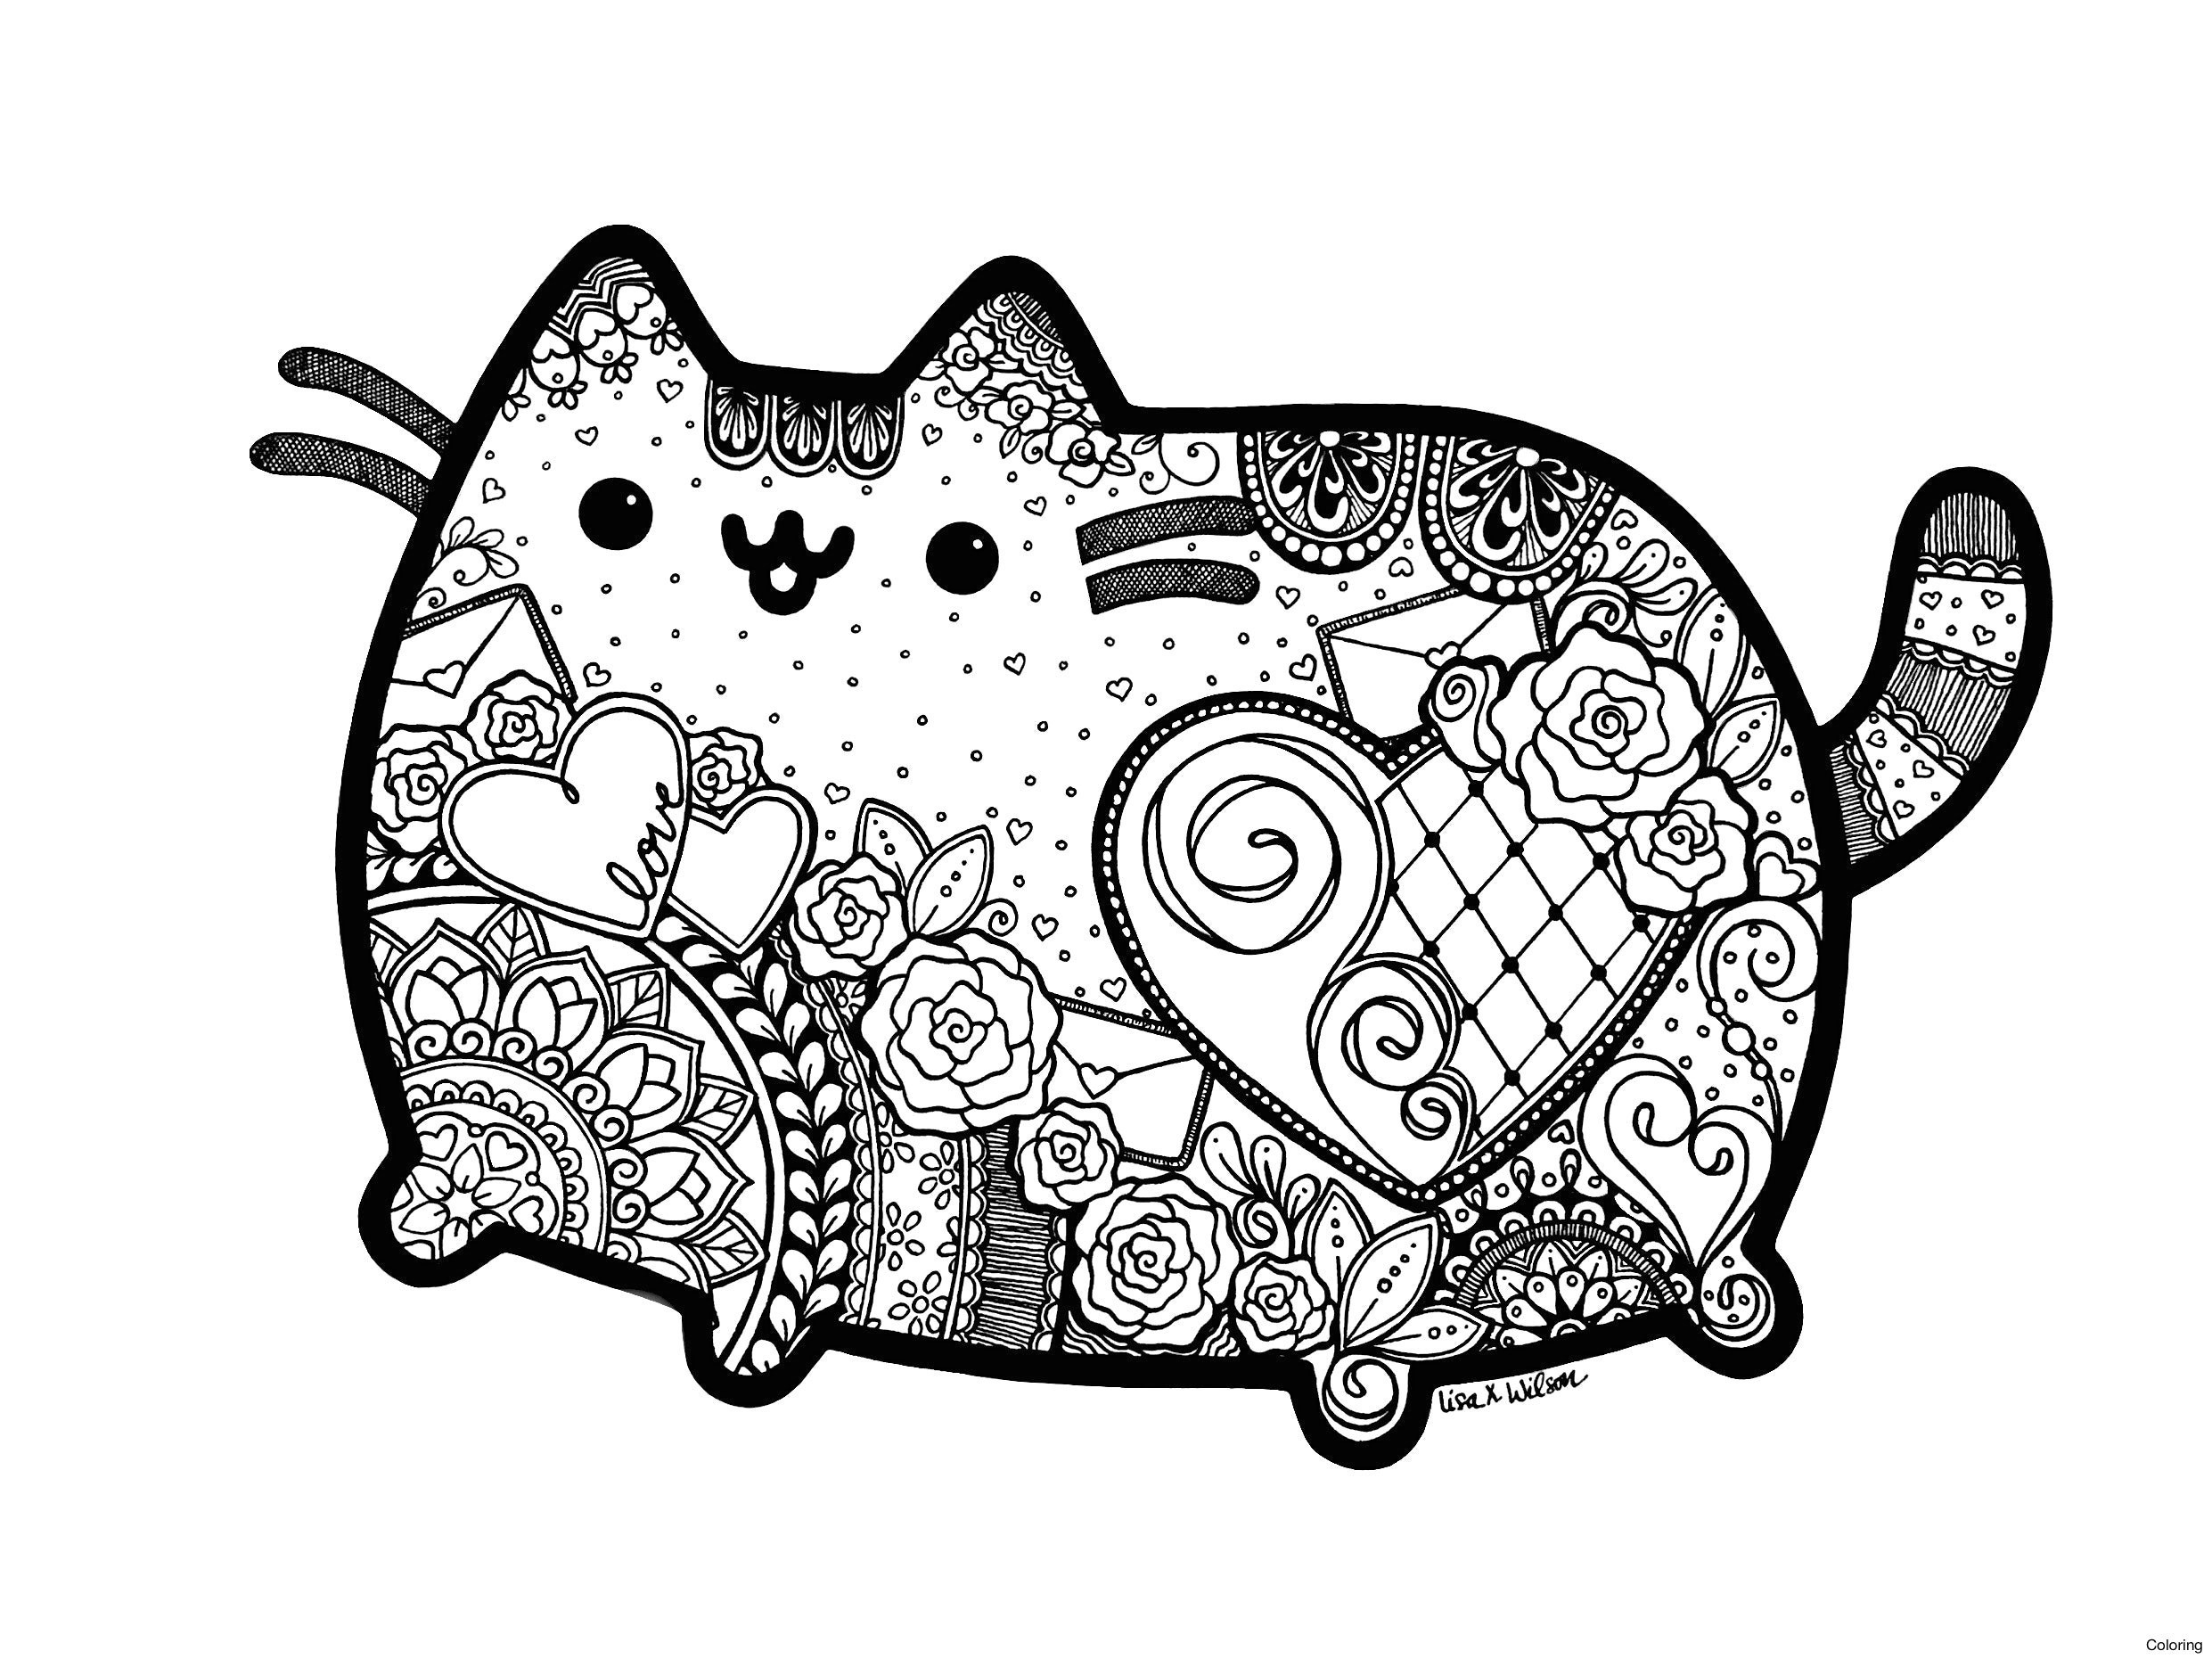 Pusheen Cat Coloring Pages Mandala Coloring Fresh Mandala Coloring Pages Cat Copy Pusheen The